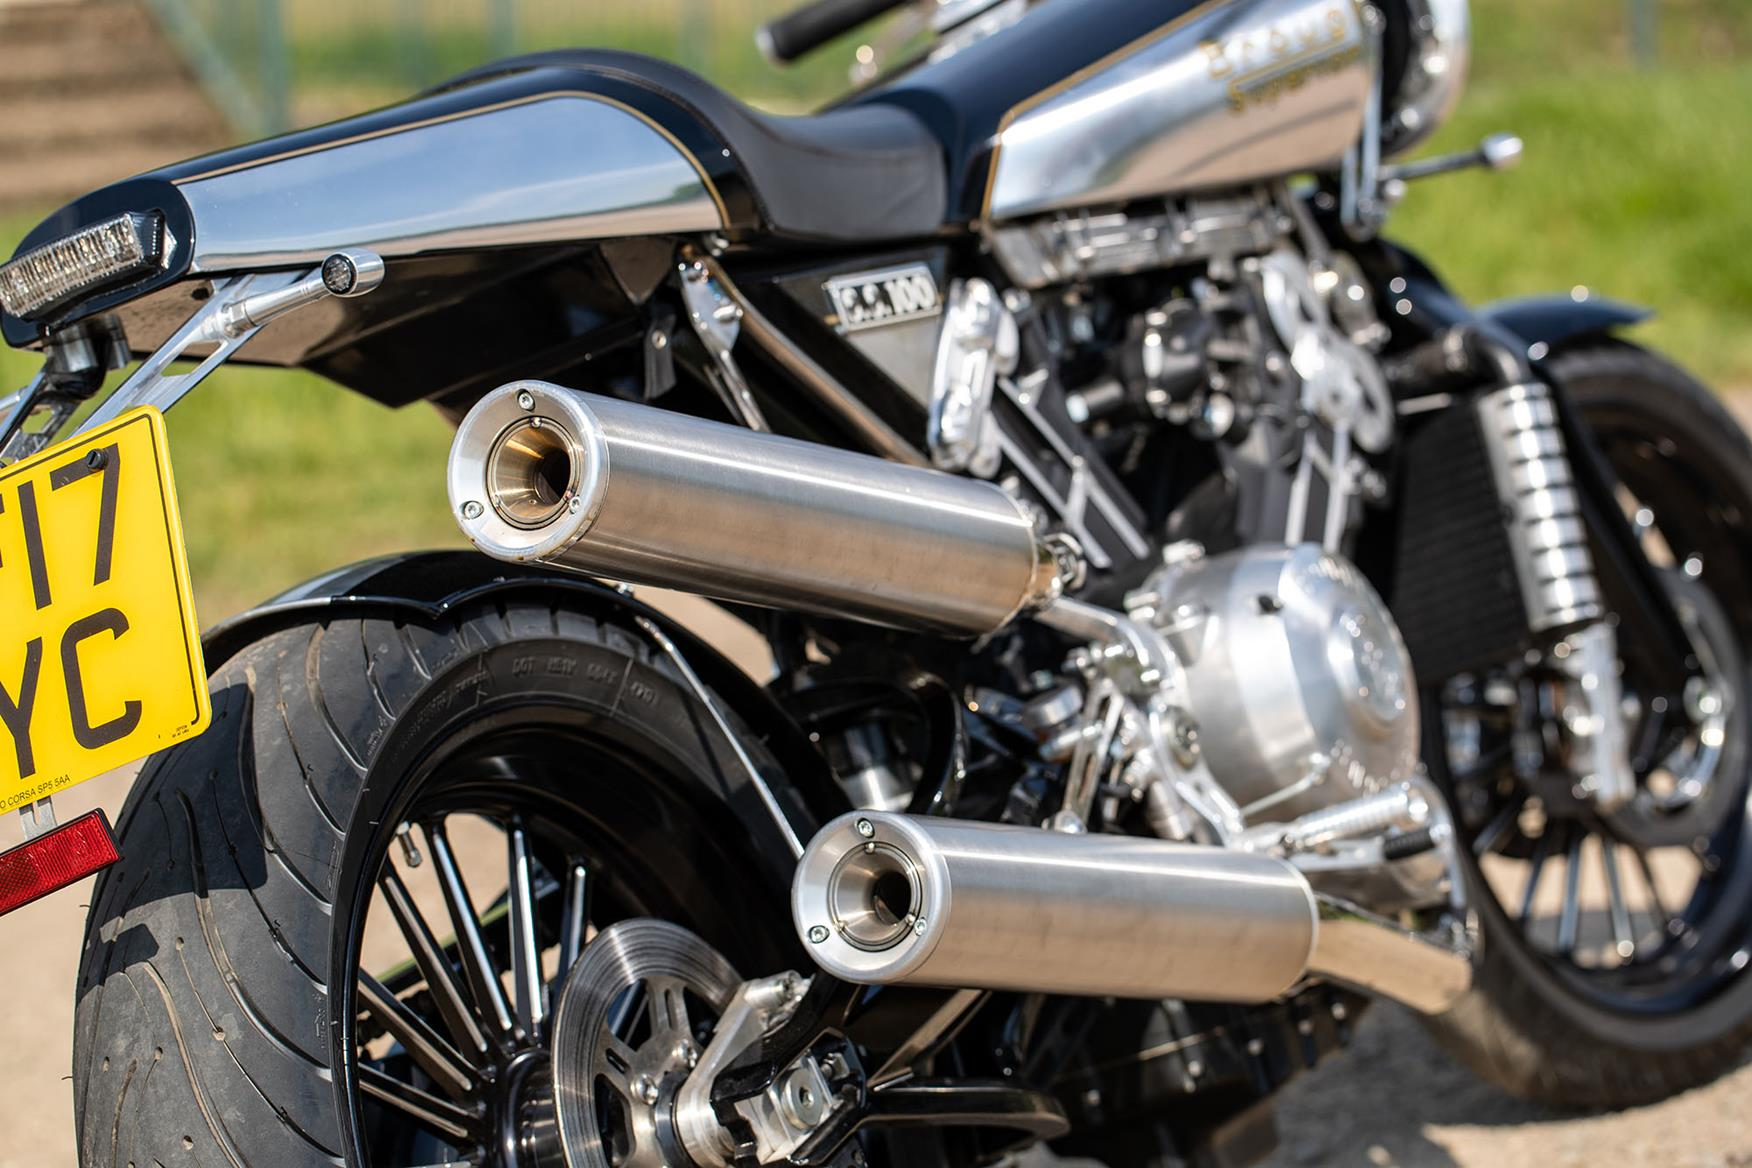 Brough Superior SS100 exhausts